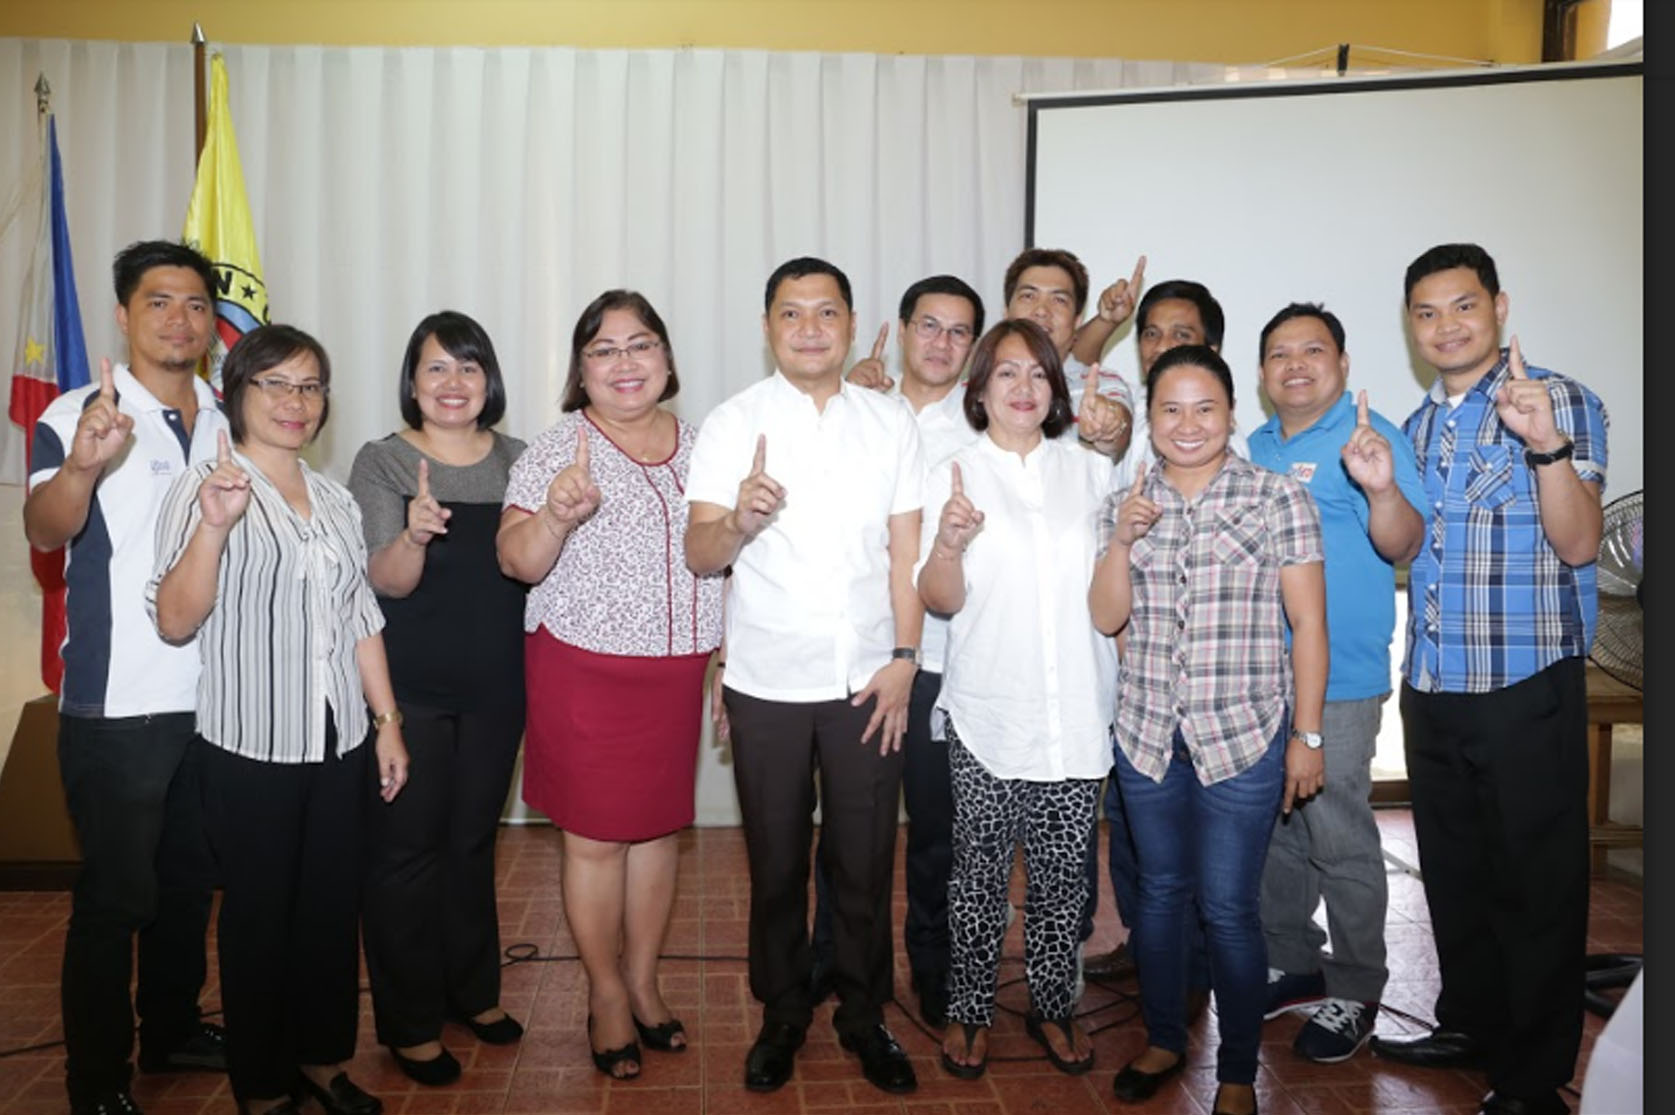 "MEETING W/ NAT'L AGENCIES. Top photo: Gov. Amado ""Pogi"" I. Espino III (5th from left) flash the Number One sign with the Department of Education (DepEd) officials/representatives of School Divisions of Pangasinan II, Urdaneta City, San Carlos City, and Alaminos City during the whole-day National Agencies Conference on April 20 at the Capitol Resort Hotel. Second photo shows the Governor with other national line agency heads/ representatives like the Department of Health, Philippine National Police and National Commission on Indigenous People. Lower photo, on the other hand, shows the provincial chief executive with the batch of representatives from Department of Science and Technology, Department of Agriculture, National Tobacco Administration, Philippine Carabao Center, Bureau of Fisheries and Aquatic Resources and Philippine Coconut Authority. Not on photo are other national agencies present like Civil Aviation Authority of the Philippines, Department of Environment and Natural Resources, Department of Trade and Industry, Housing and Land Use Regulatory Board, Dept. of Public Works and Highways, CENPELCO, PANELCO, DECORP, TESDA, among several others who also took turns in having photo ops with Gov. Espino. (Photo by Bob F. Sison/RRB)"